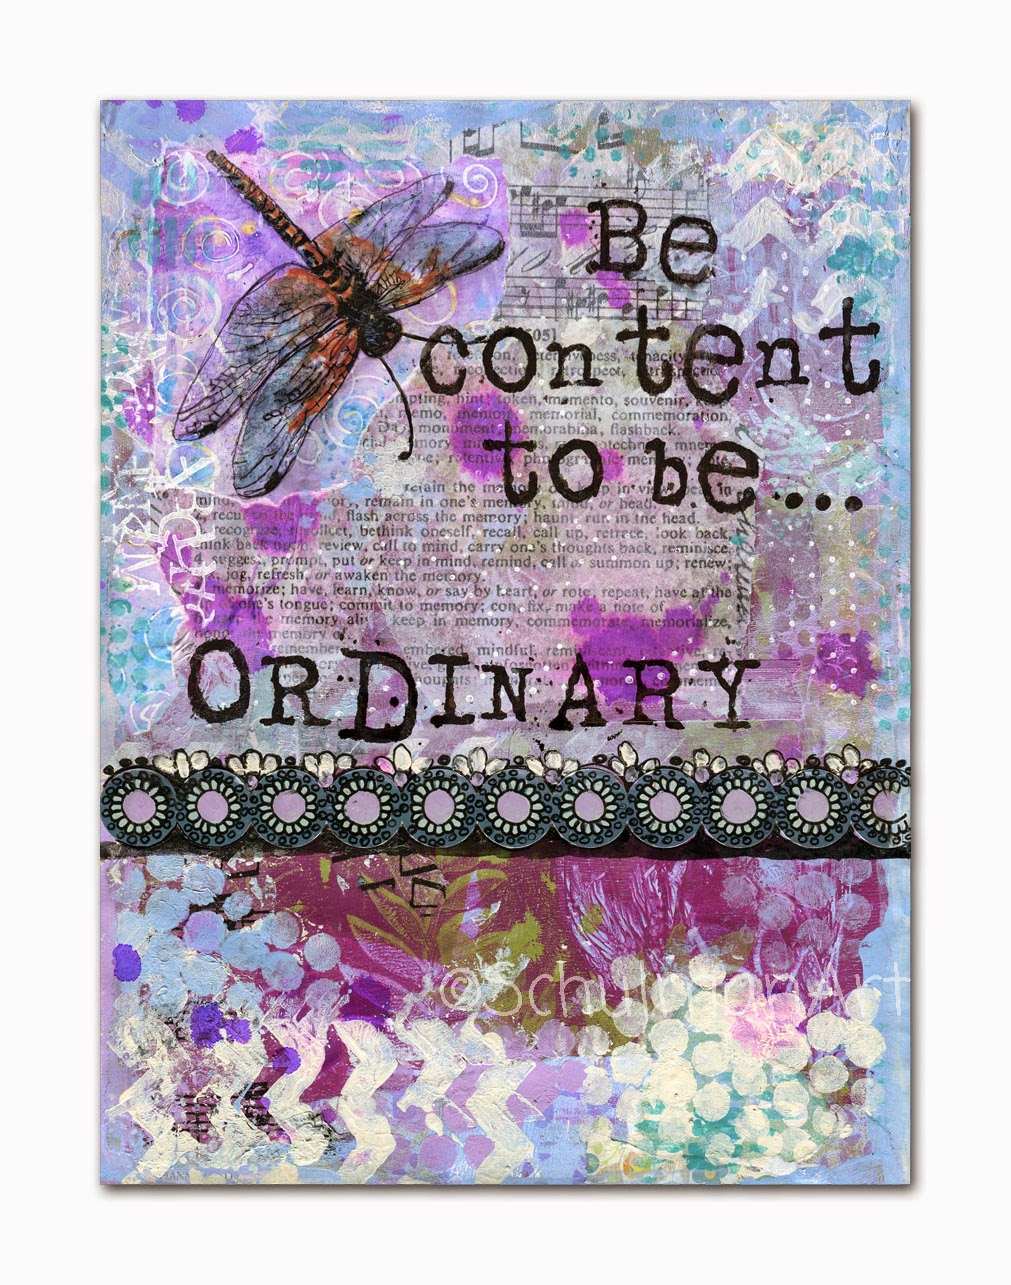 collect inspirational prints from https://www.etsy.com/shop/SchulmanArts/search?search_query=inspirational+prints&order=date_desc&view_type=gallery&ref=shop_search